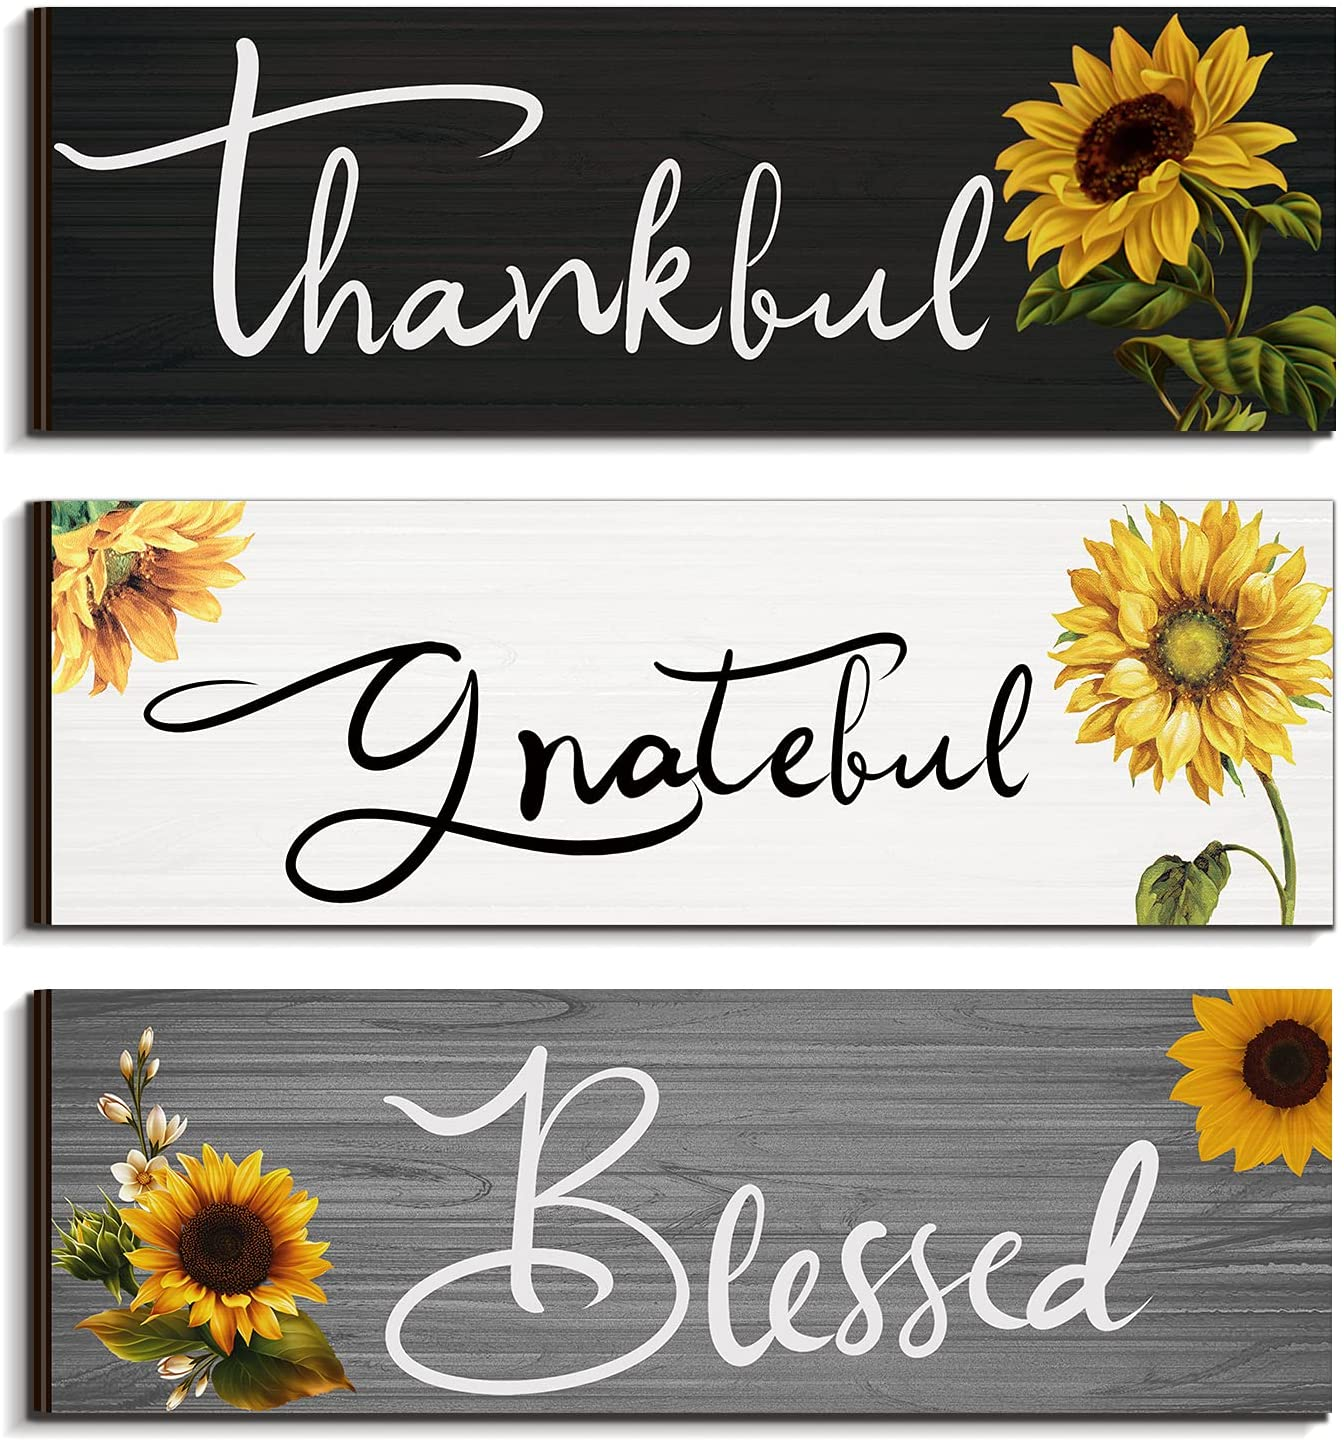 3 Pieces Sunflower Farmhouse Wall Decor Thankful Grateful Blessed Wooden Signs Sunflower Hanging Wall Signs Rustic Wall Art Decor Sunflower Decor for Farmhouse Outdoor Decor for Thanksgiving (Gray)